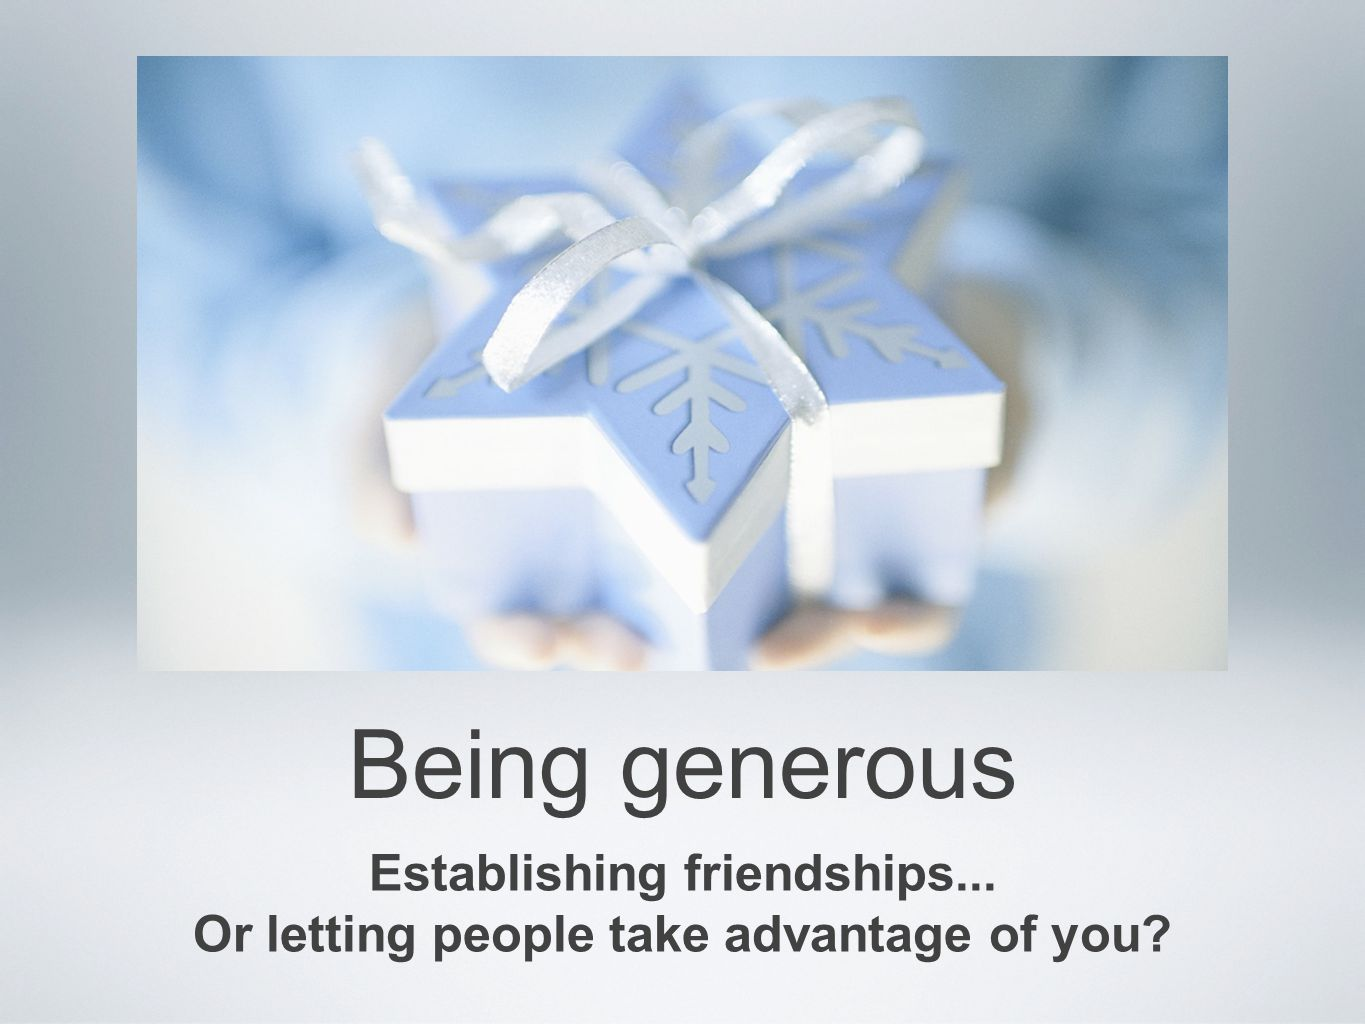 Being generous Establishing friendships... Or letting people take advantage of you